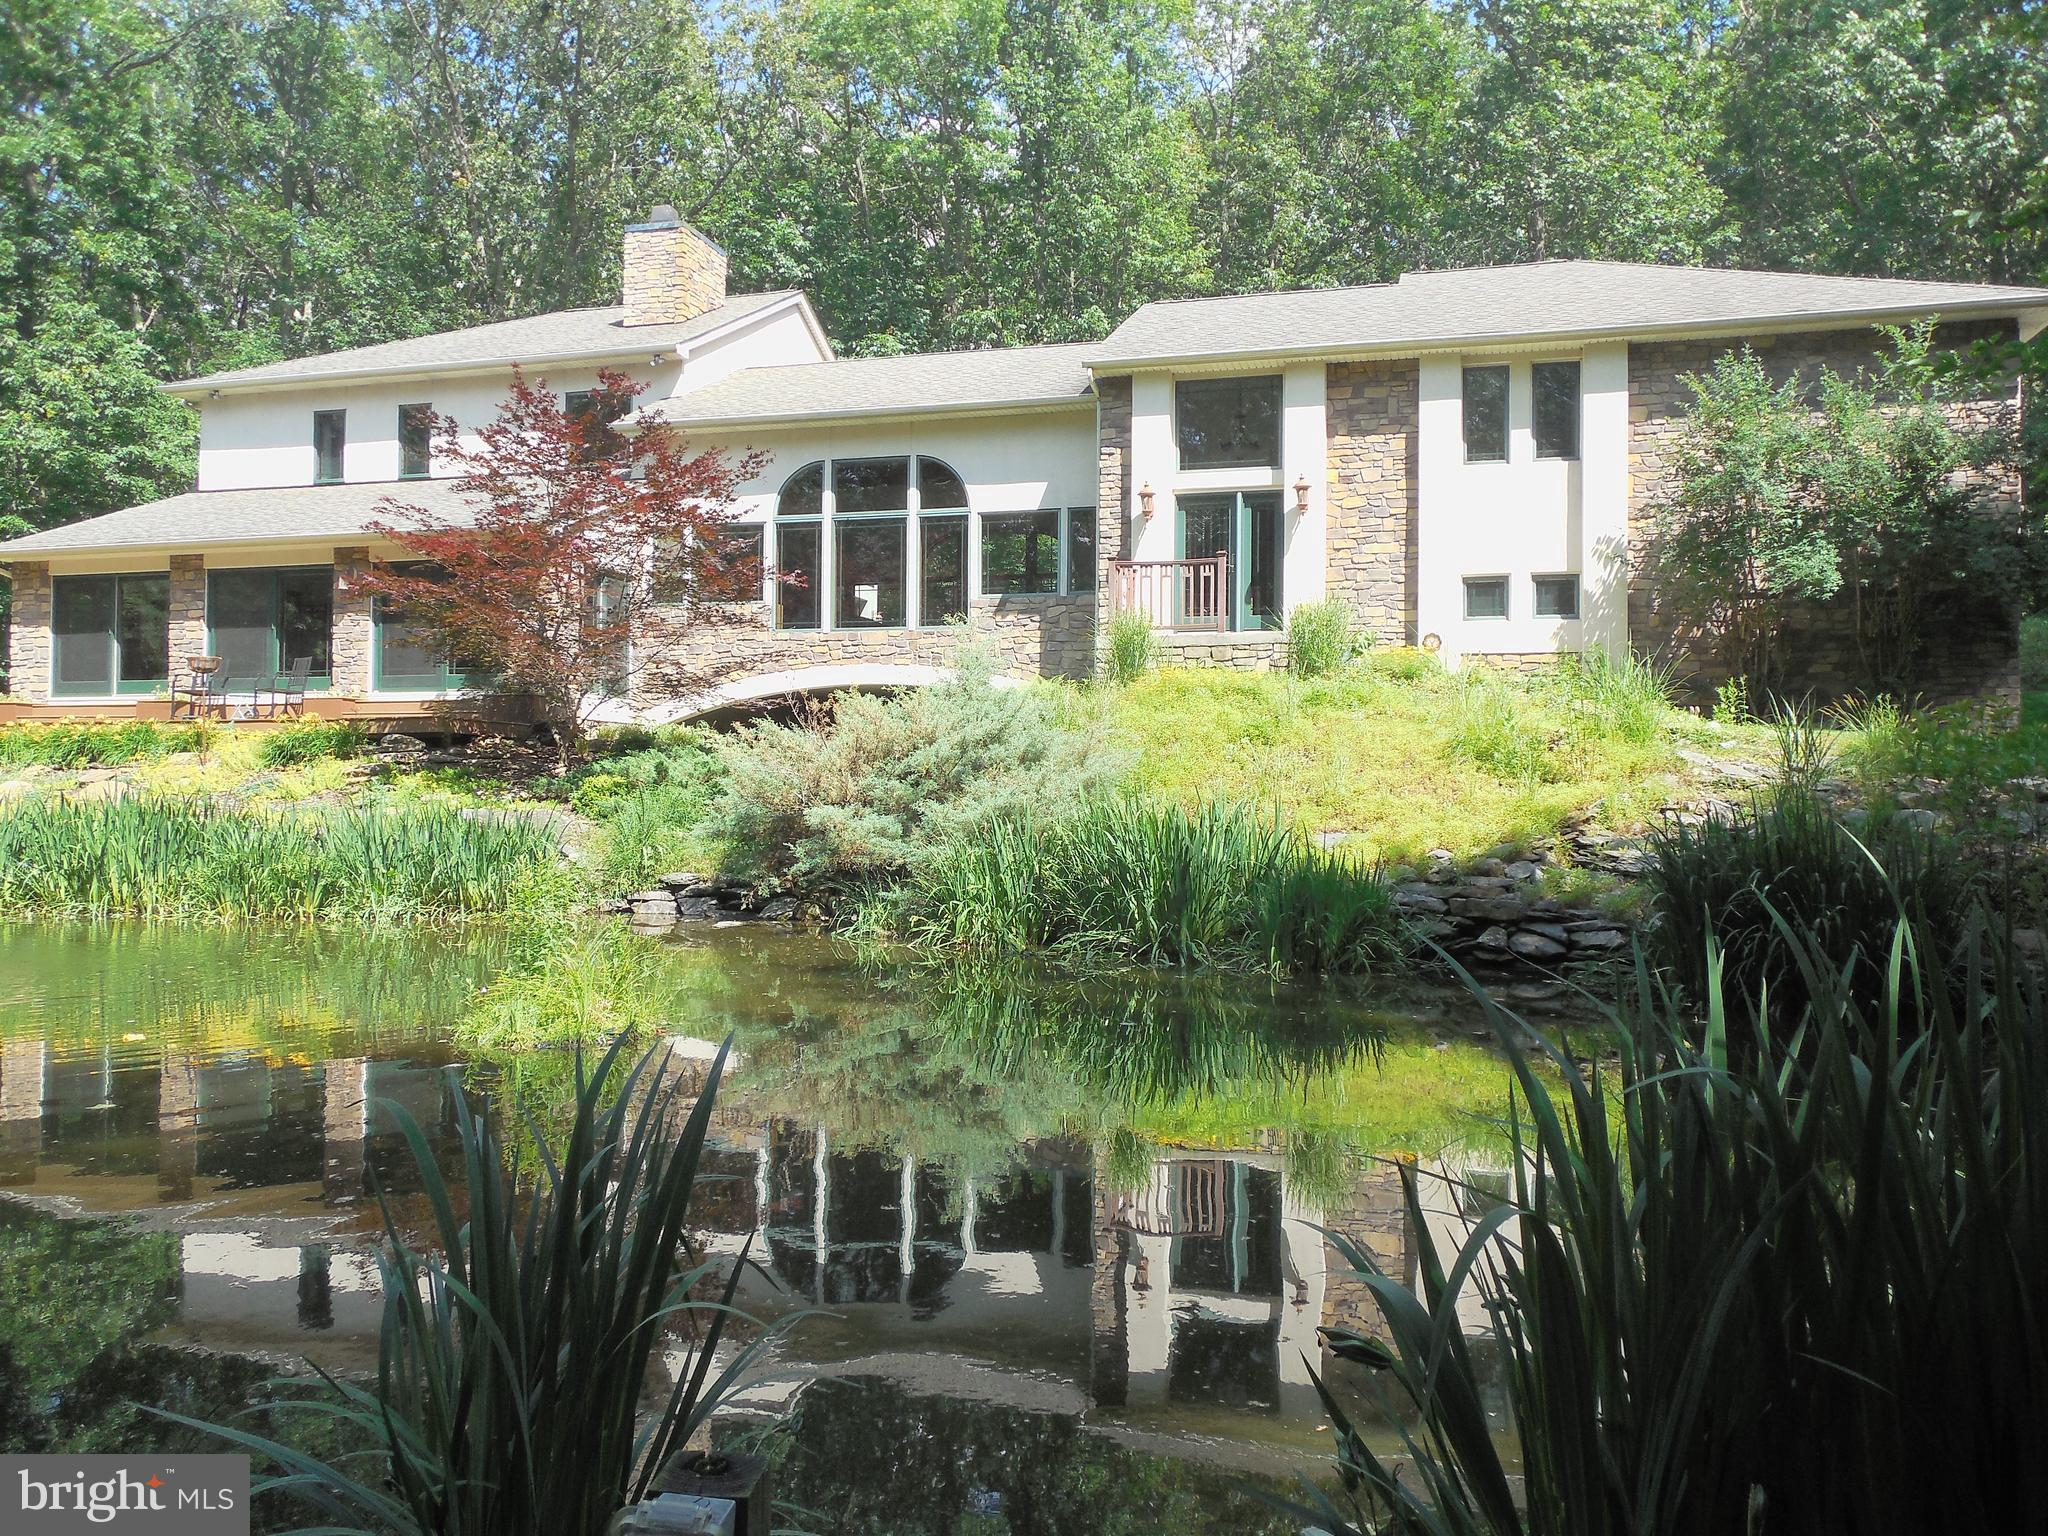 1213 OLD PYLESVILLE ROAD, WHITEFORD, MD 21160